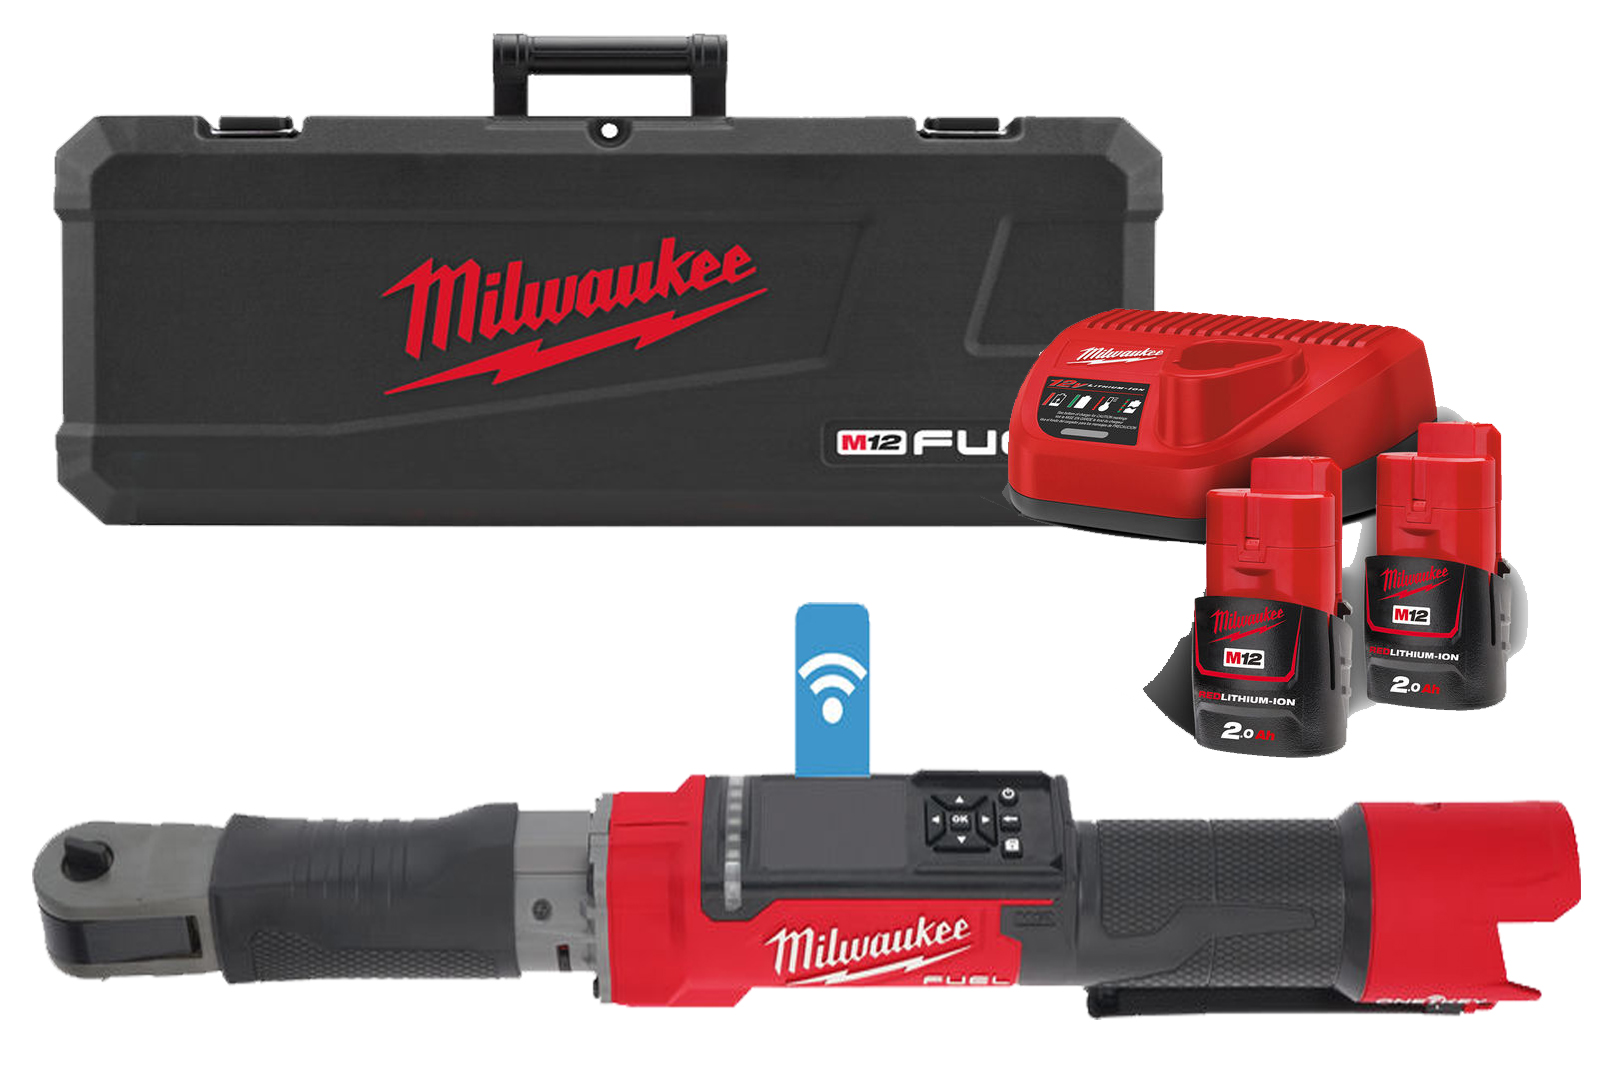 Milwaukee M12ONEFTR12 12V One-Key Brushless 1/2In Digital Torque Wrench - 2.0Ah Pack